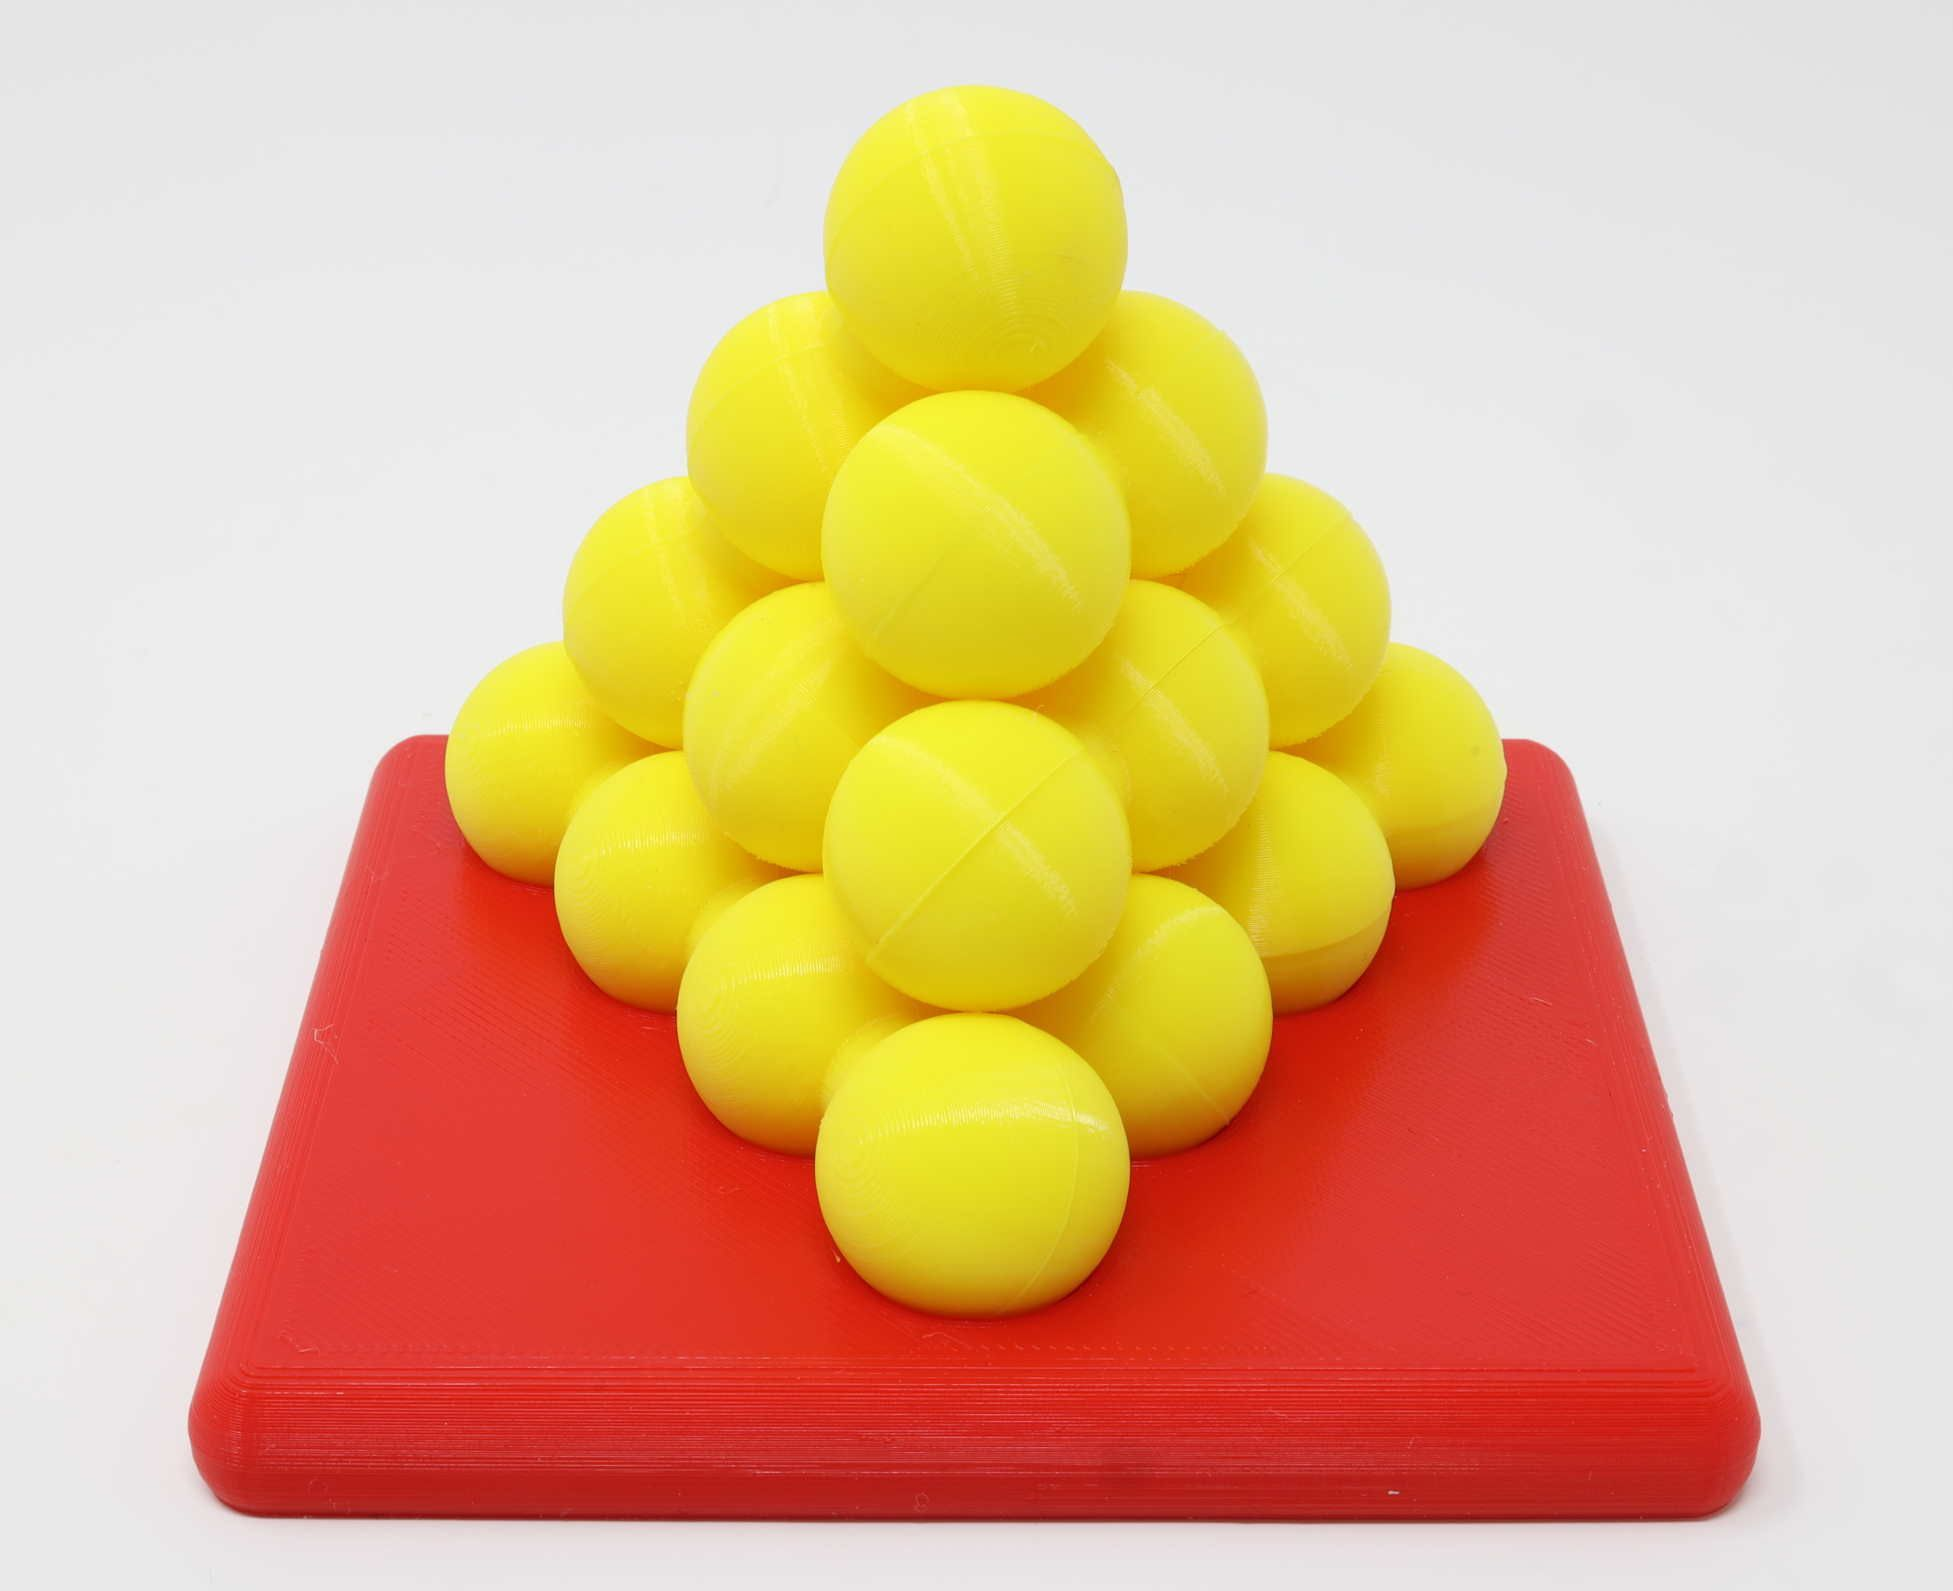 BG1A0965_crop.jpg Download free STL file Perplexing Pyramid Puzzle • 3D printable model, gibell